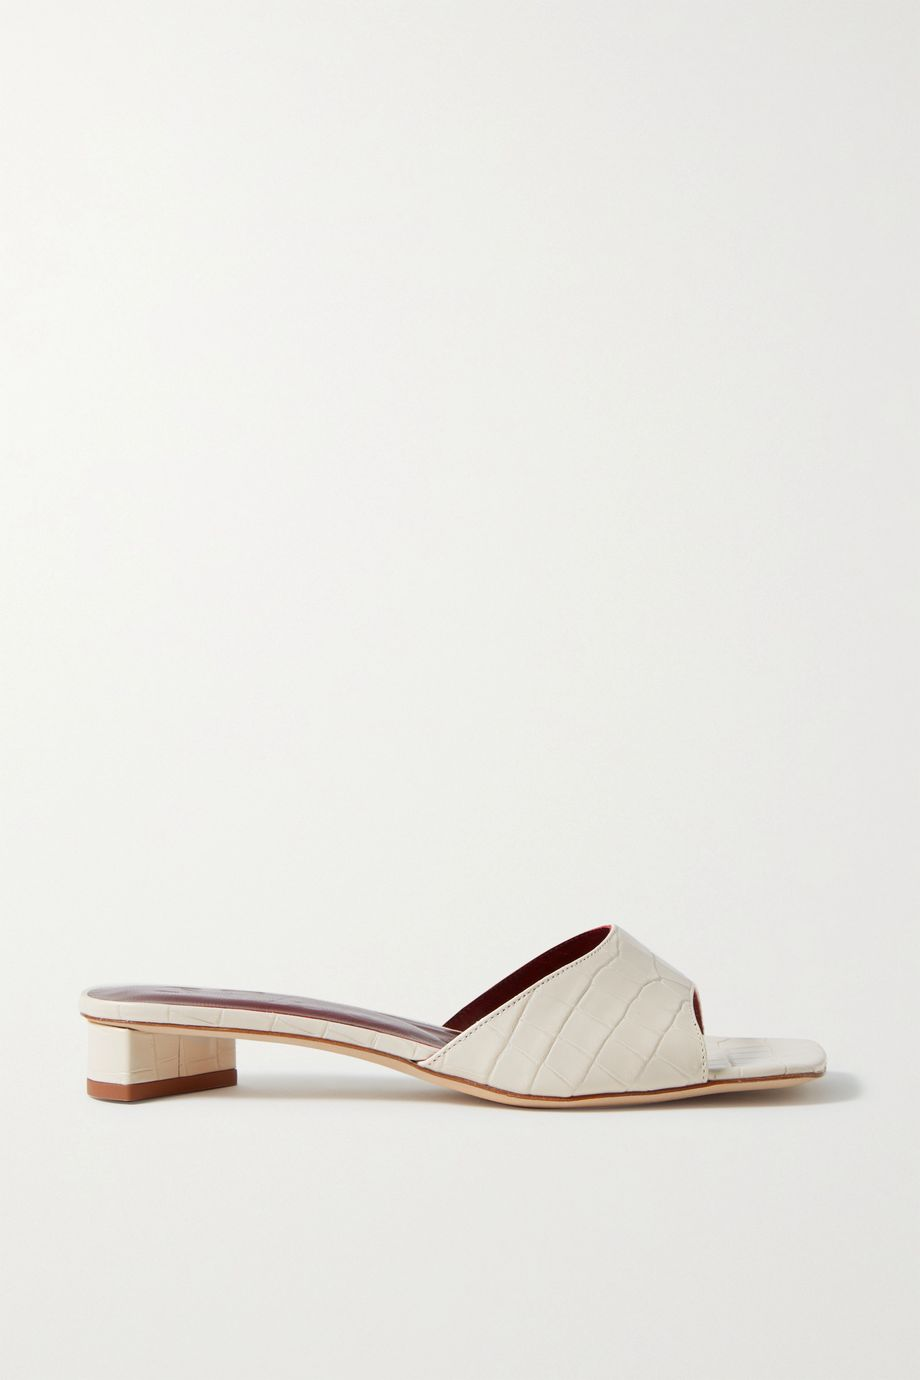 STAUD Simone croc-effect leather mules